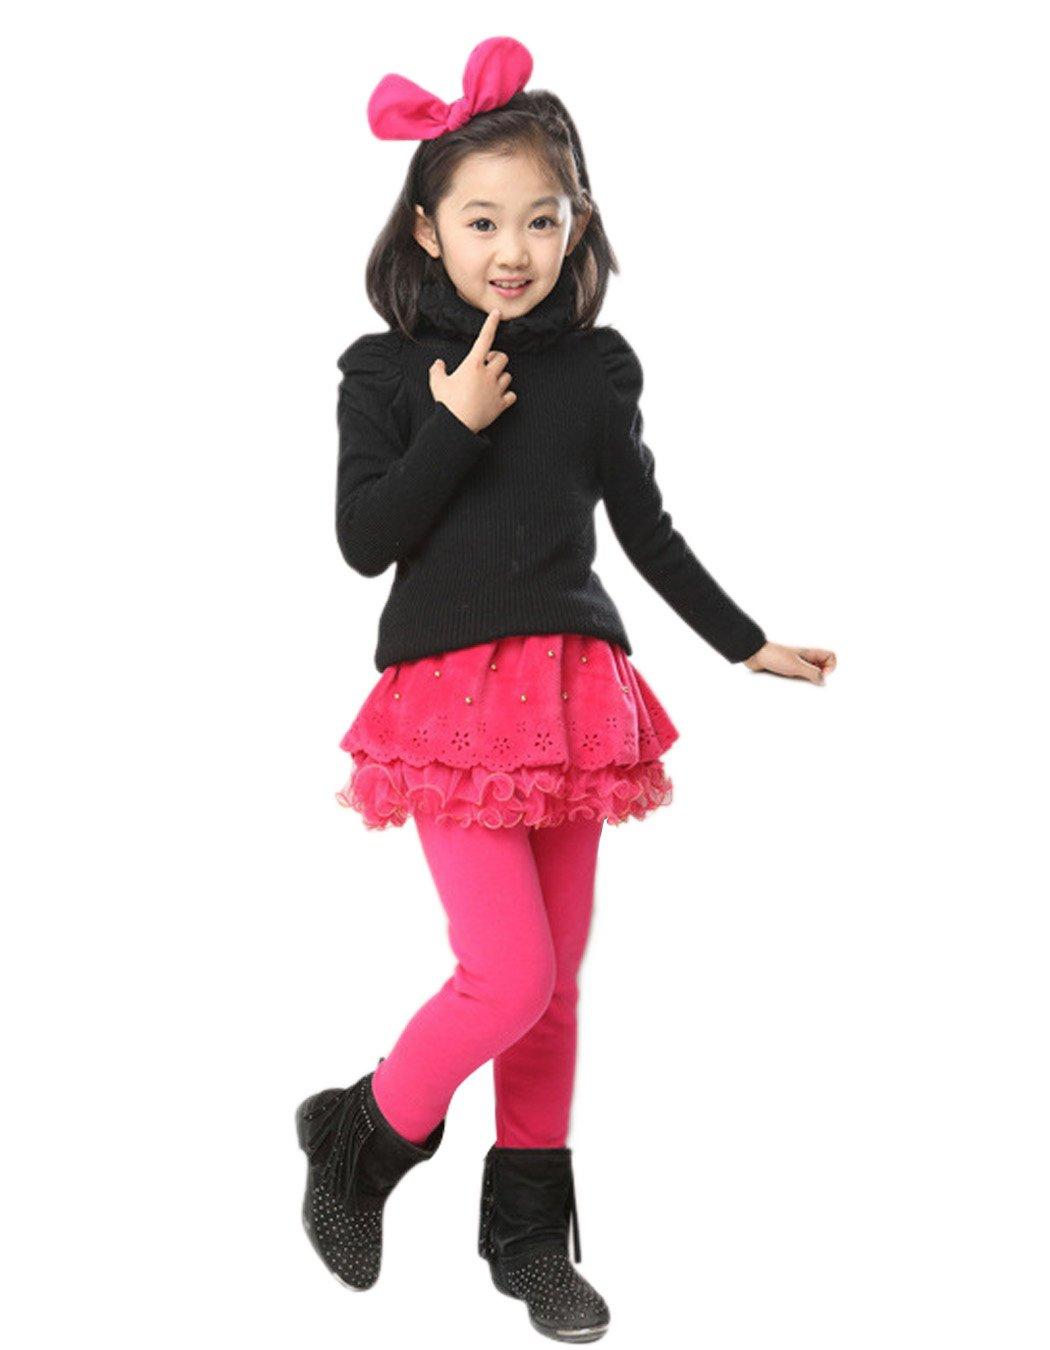 Arshiner Girls Tutu Winter Warm Cotton Leggings Culottes Skirt Pants AS001688